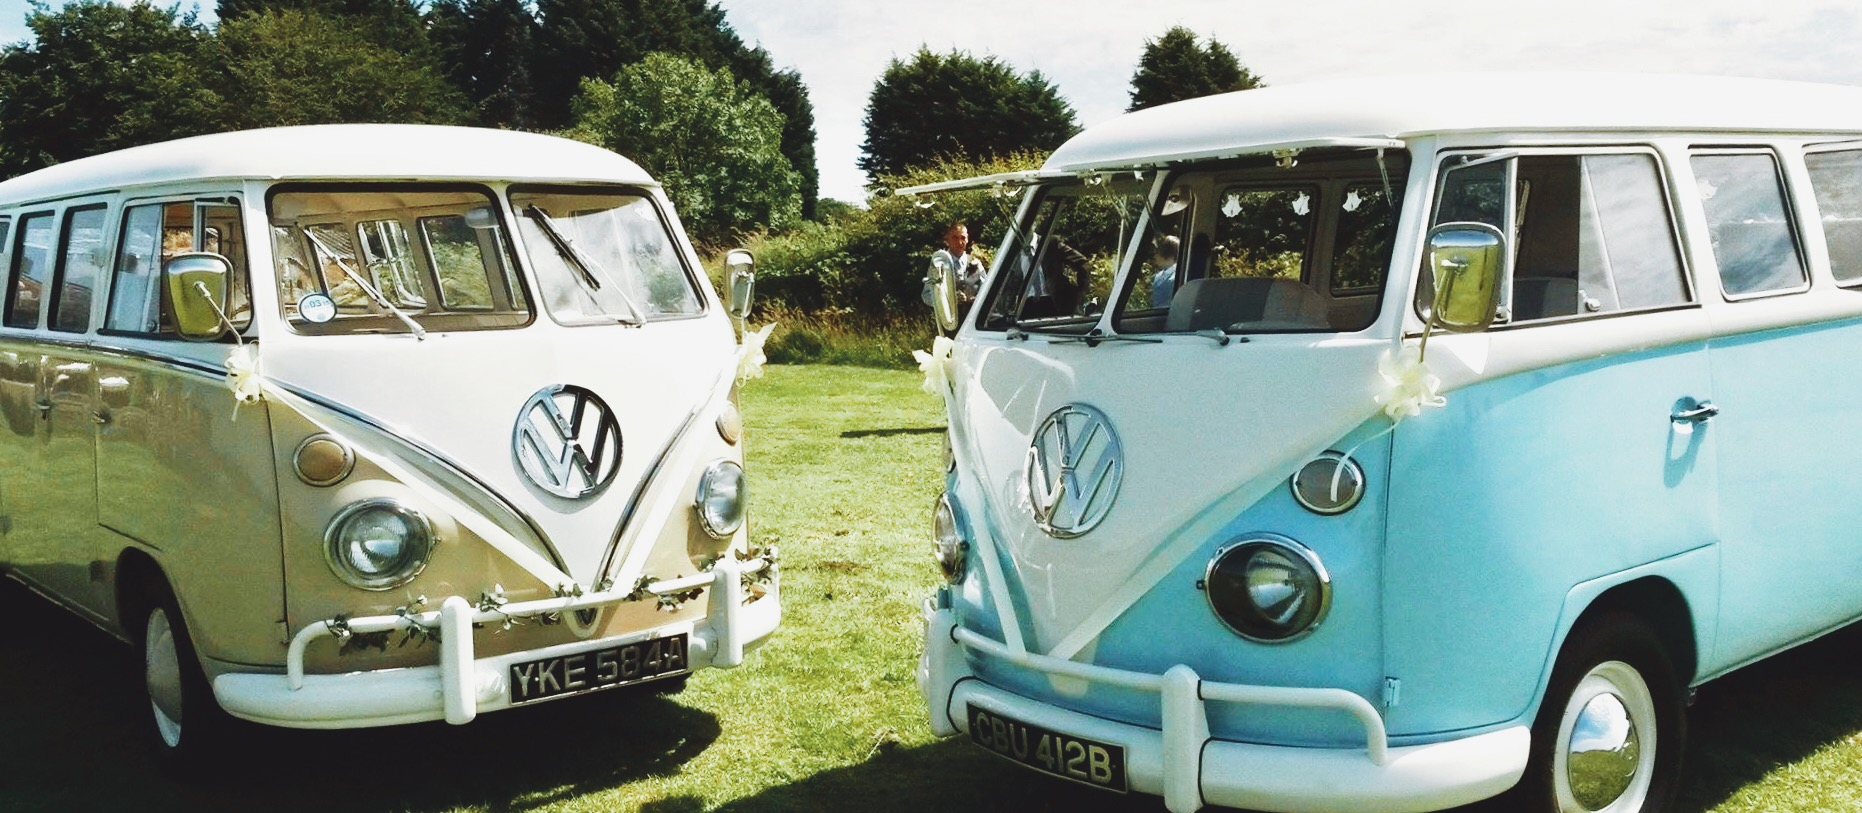 Arthur and Tiffany , our cherished VW split screen camper vans available for hire across Lancashire